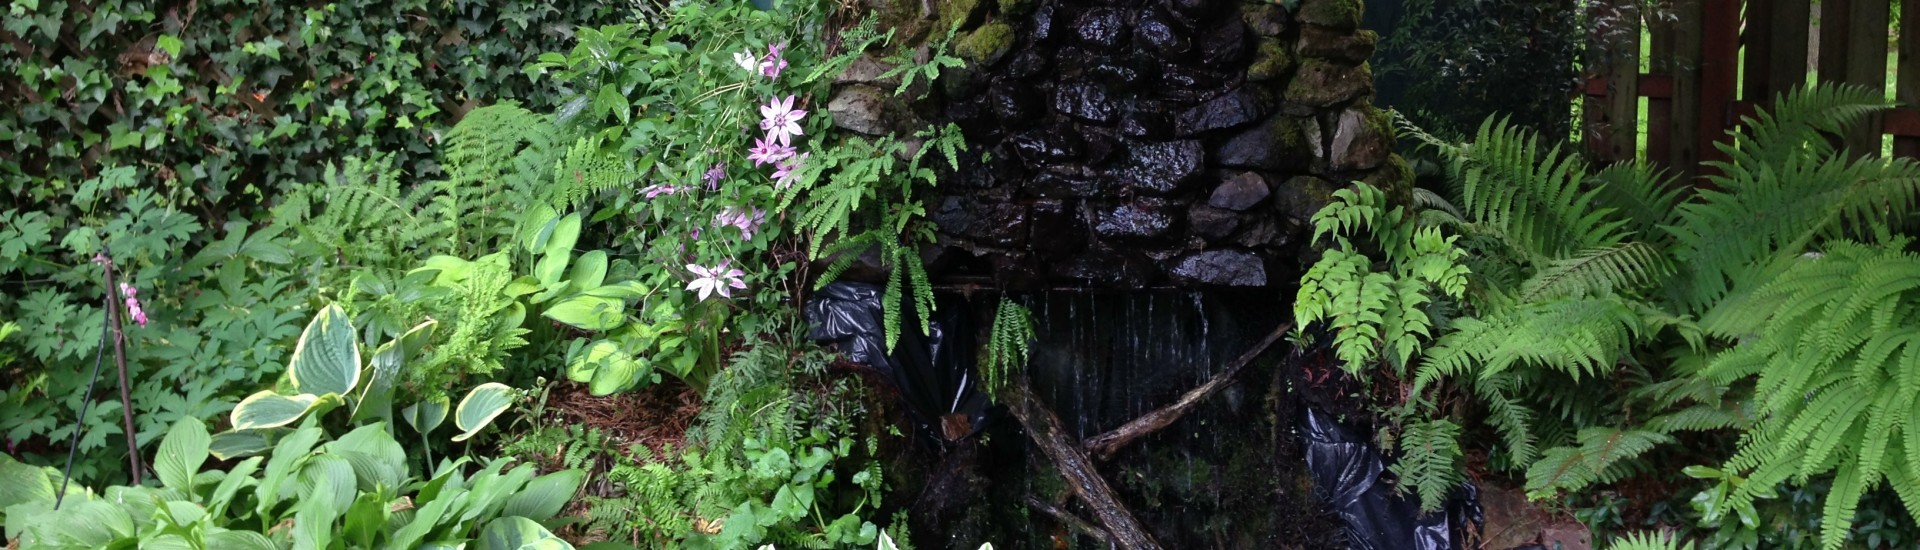 Unusable fireplace chimney becomes a pond waterfall.